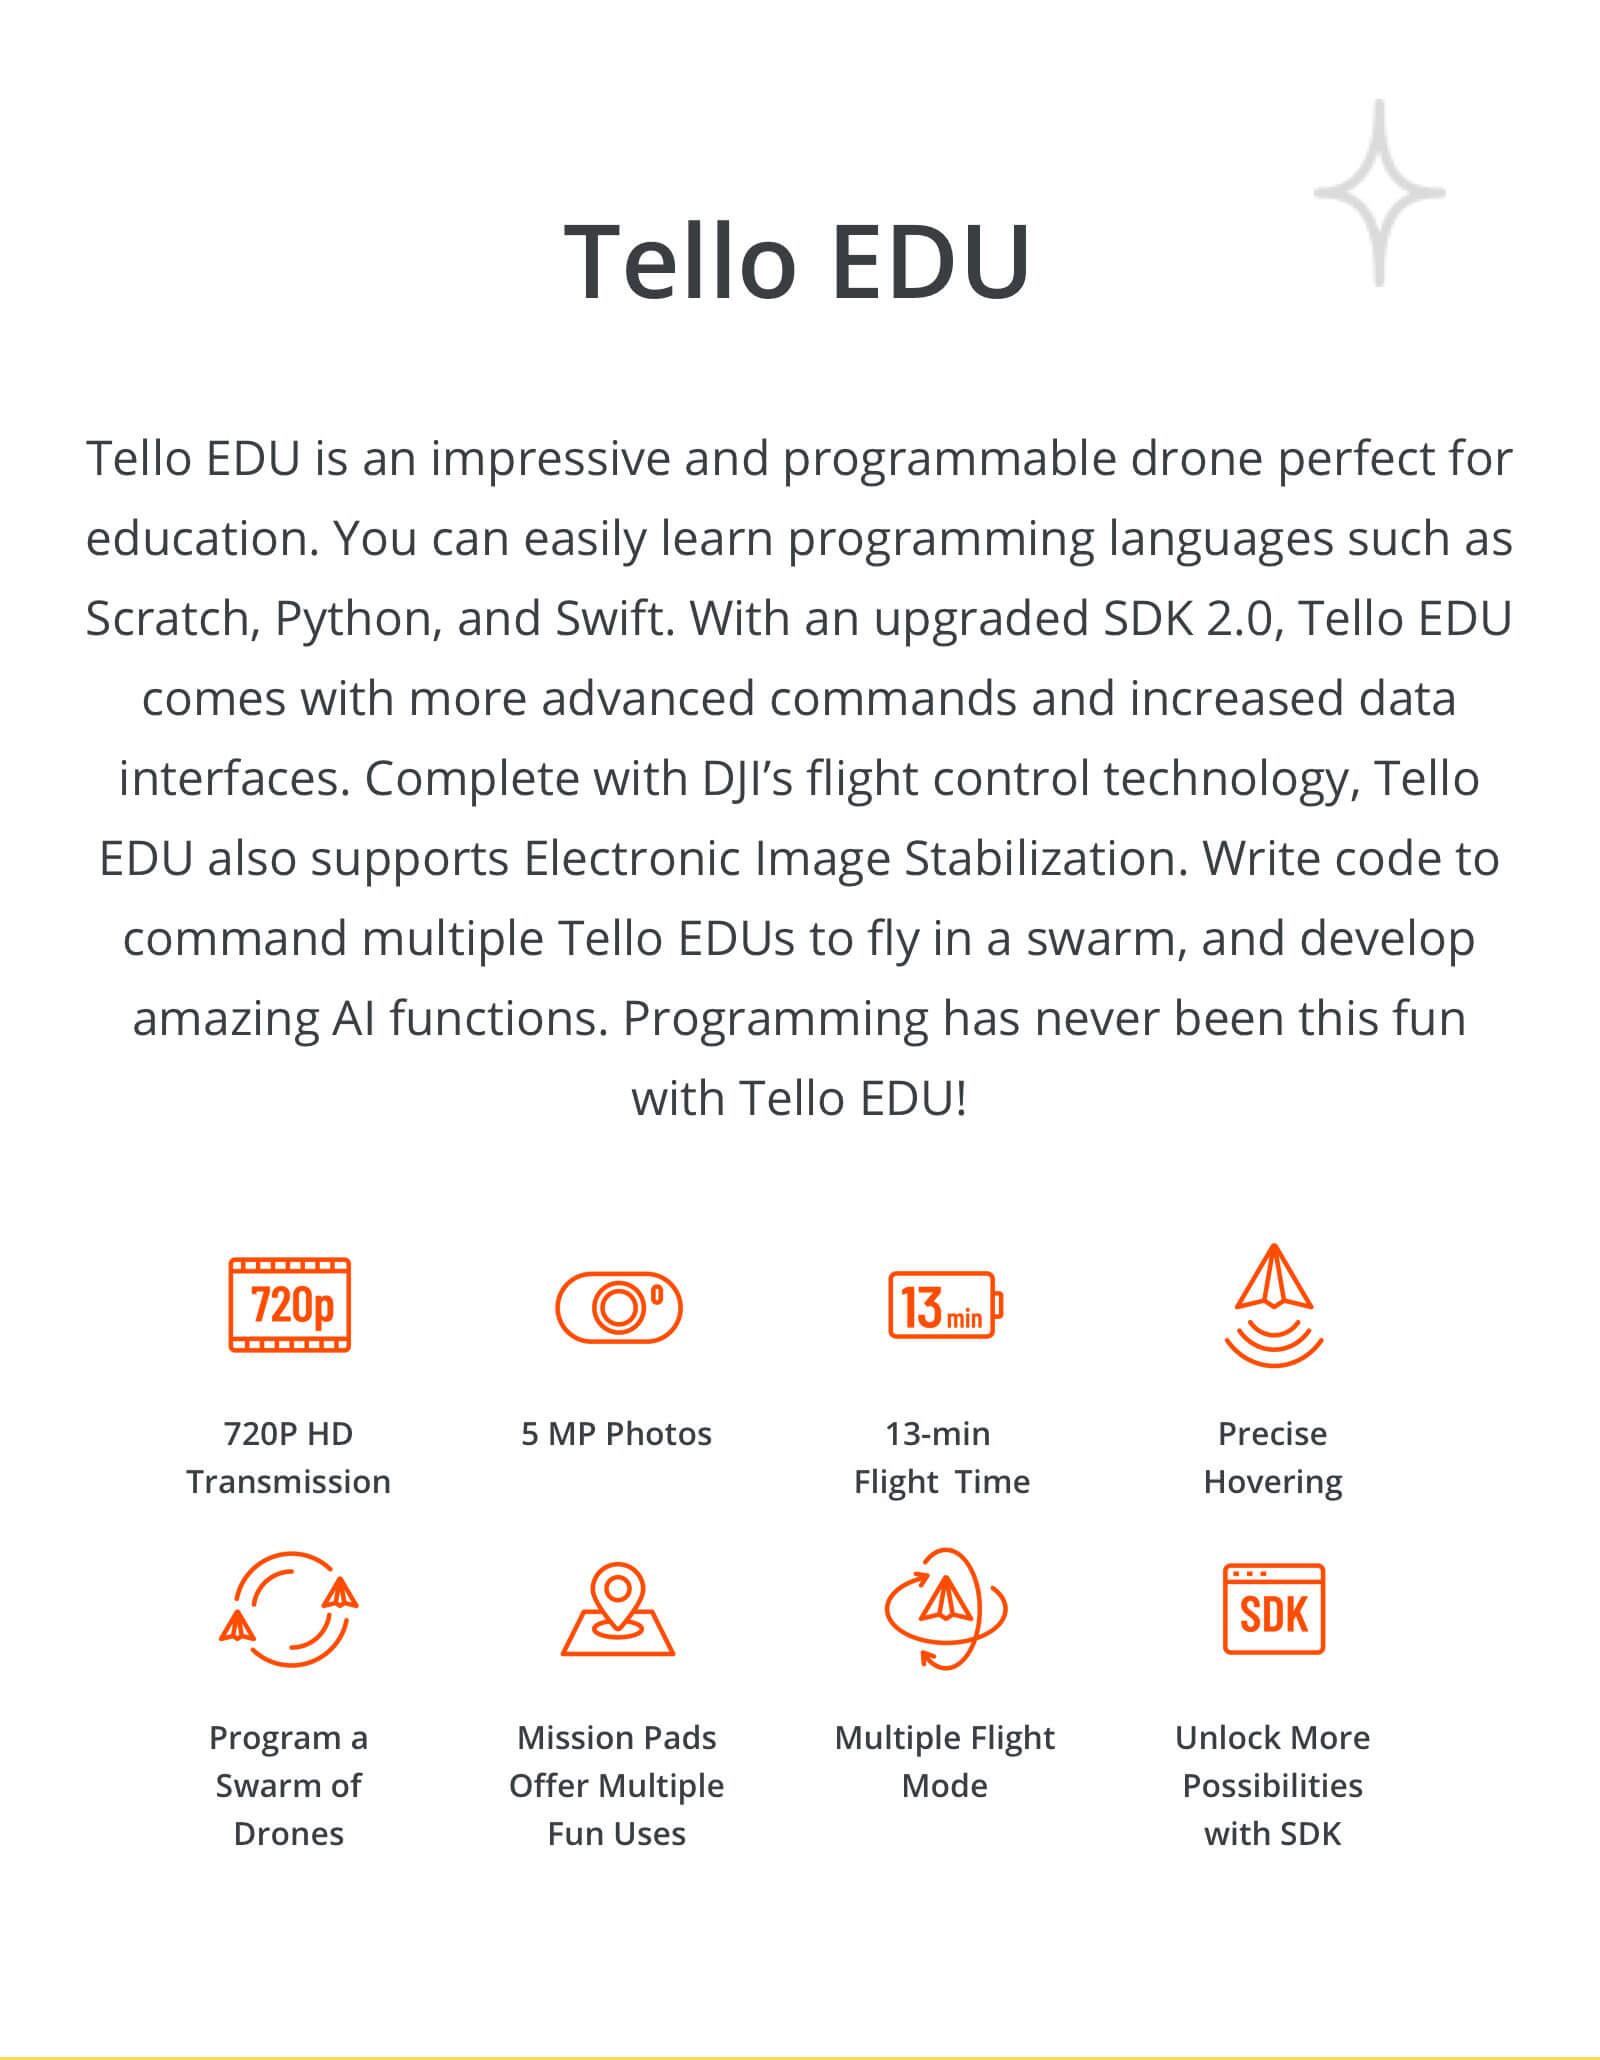 Buy DJI Tello EDU Minidrone Quadcopter today at DroneNerds